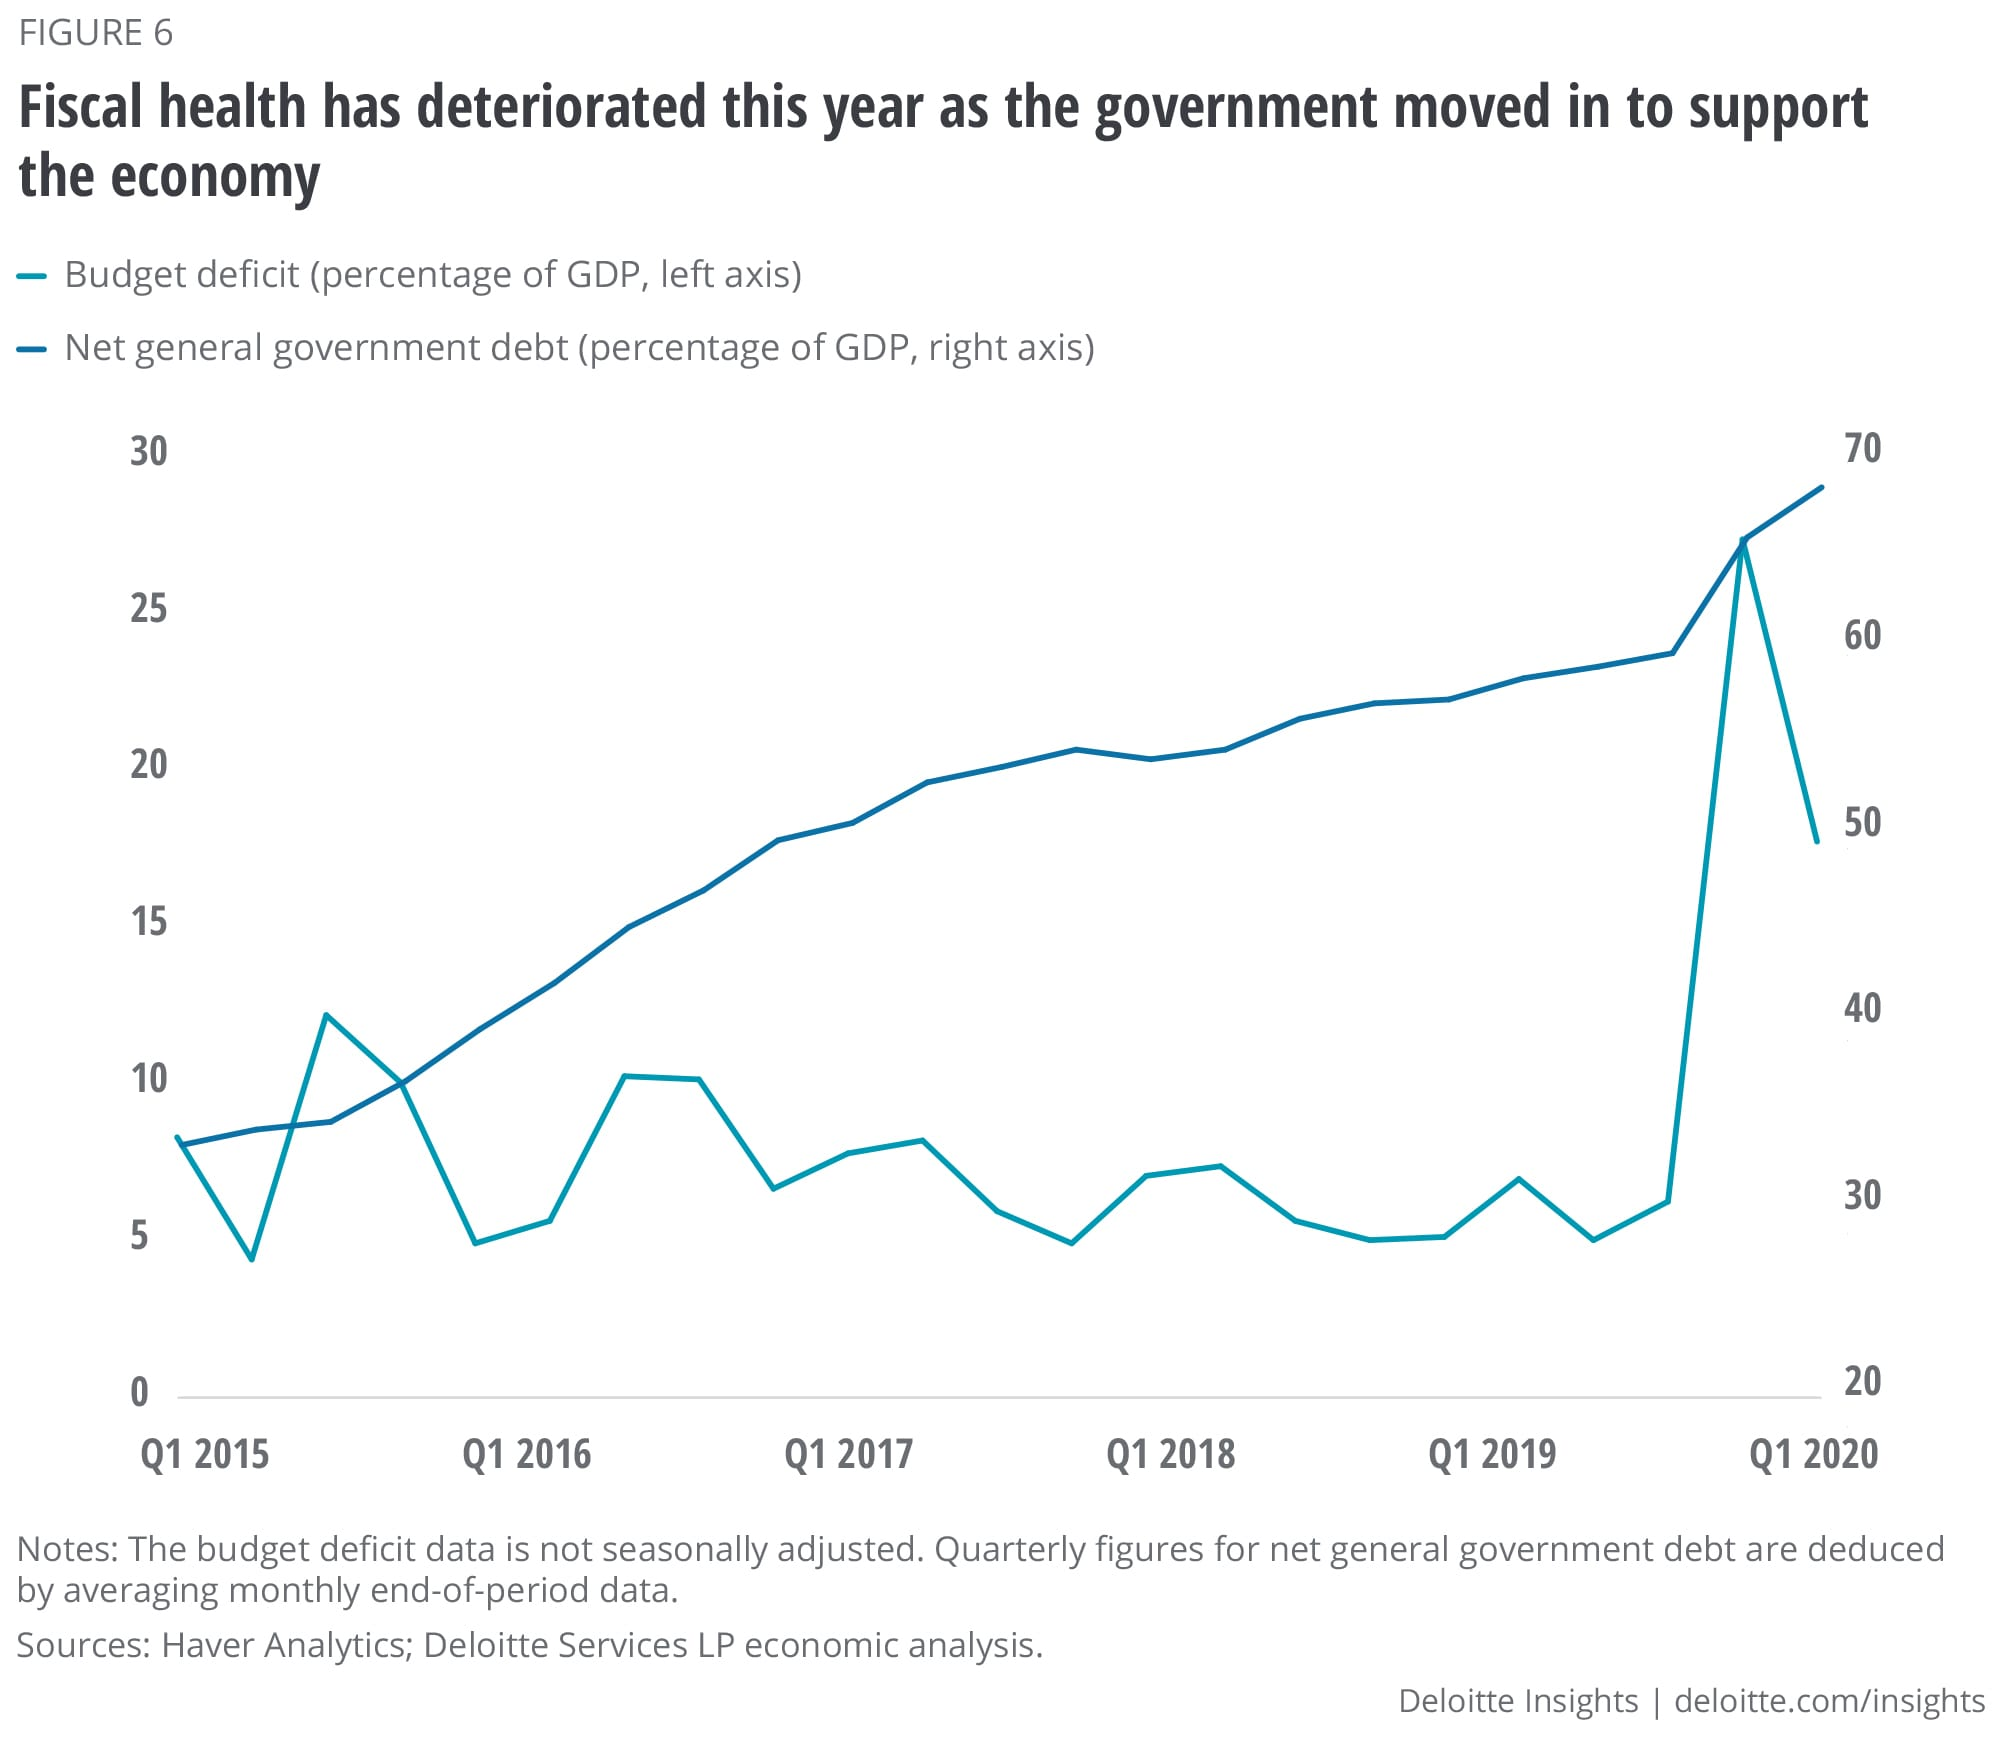 Fiscal health has deteriorated this year as the government moved in to support the economy